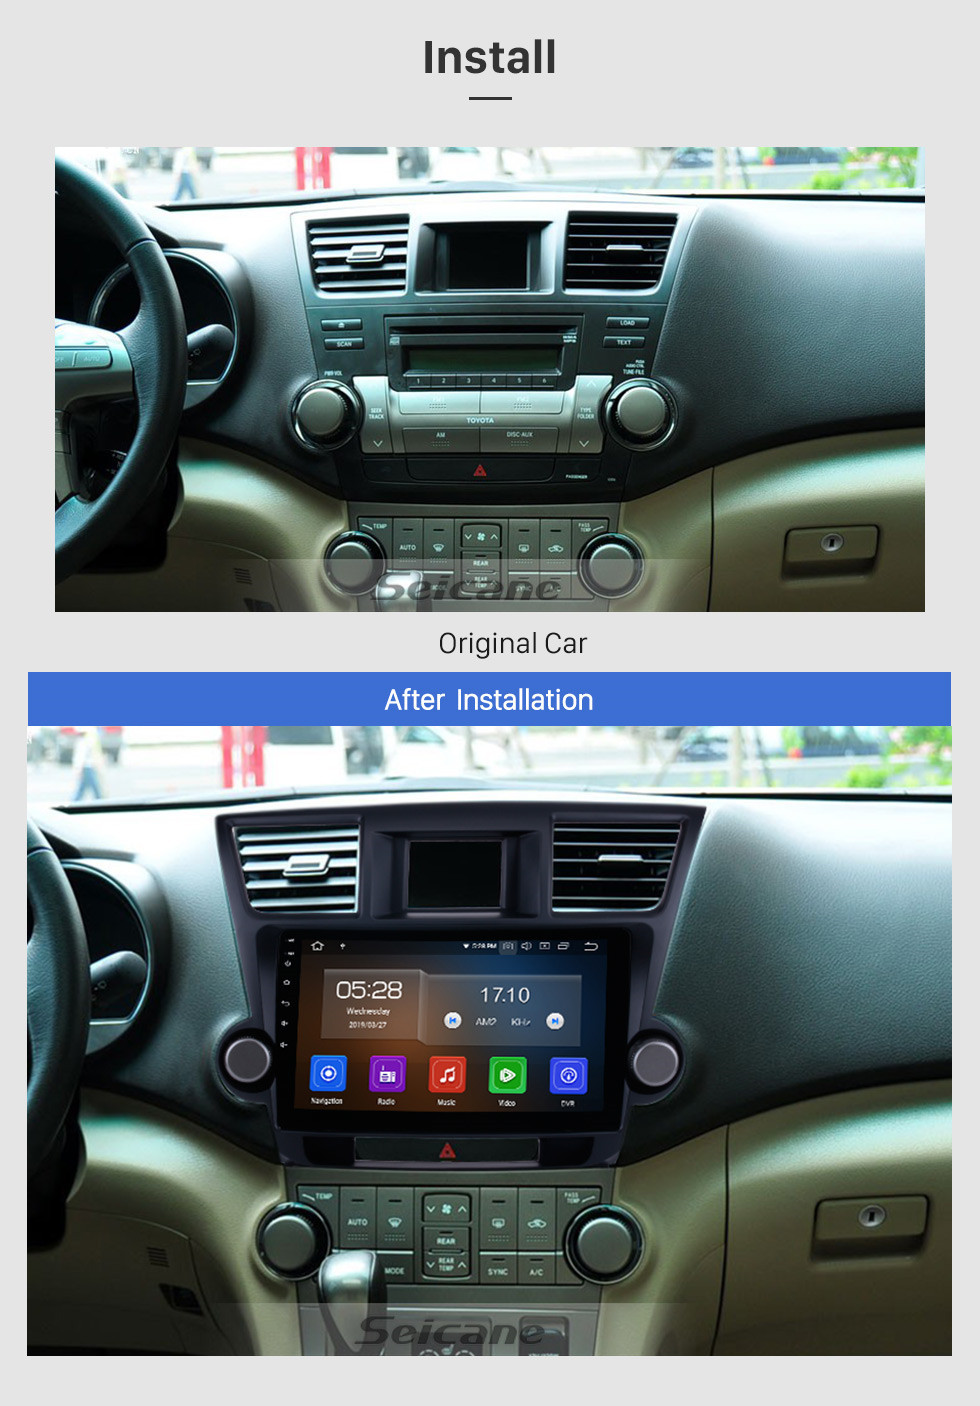 Seicane 10.1 Inch 2009-2015 Toyota Highlander Android 9.0 Capacitive Touch Screen Radio GPS Navigation system with Bluetooth TPMS DVR OBD II Rear camera AUX USB SD 3G WiFi Steering Wheel Control Video